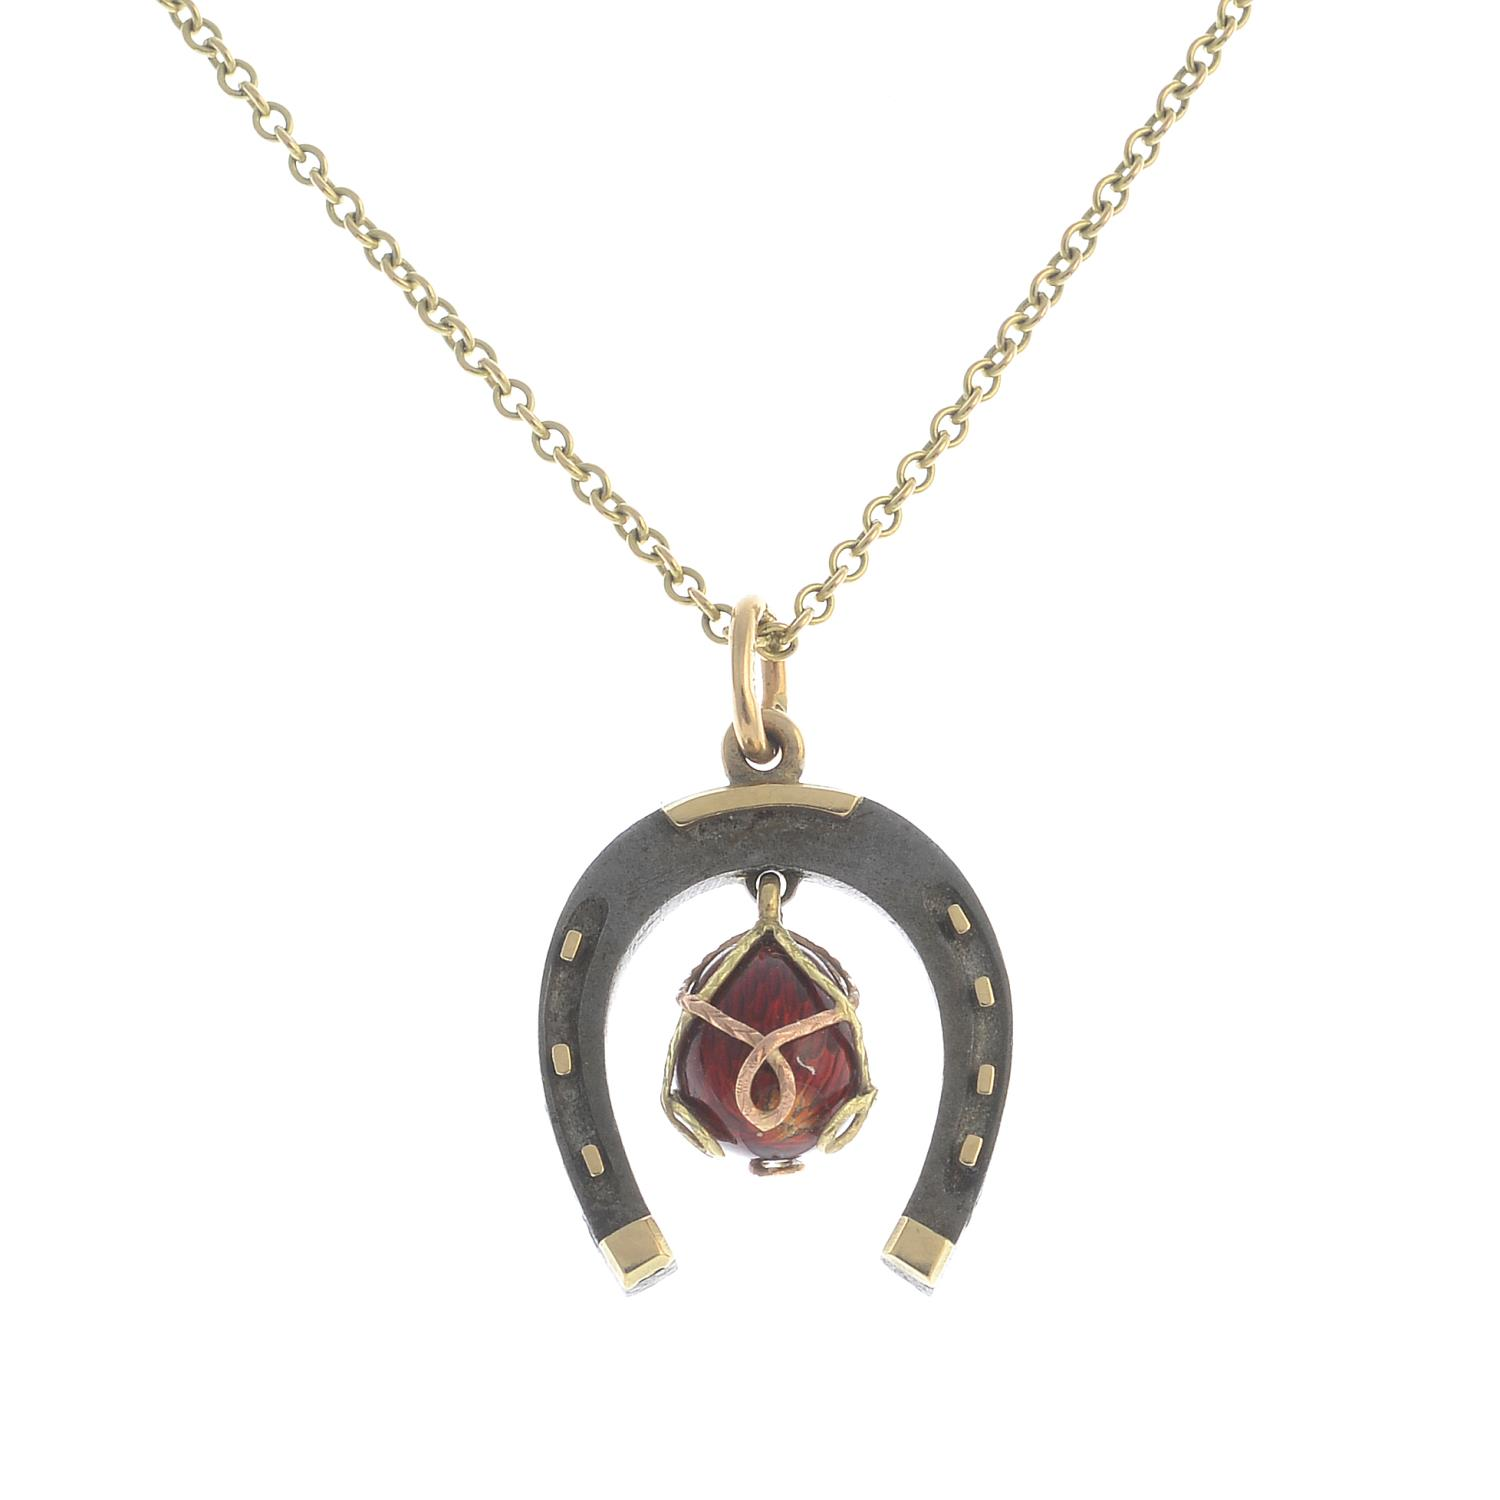 Lot 17 - An early 20th century 9ct gold and iron enamel horseshoe pendant,